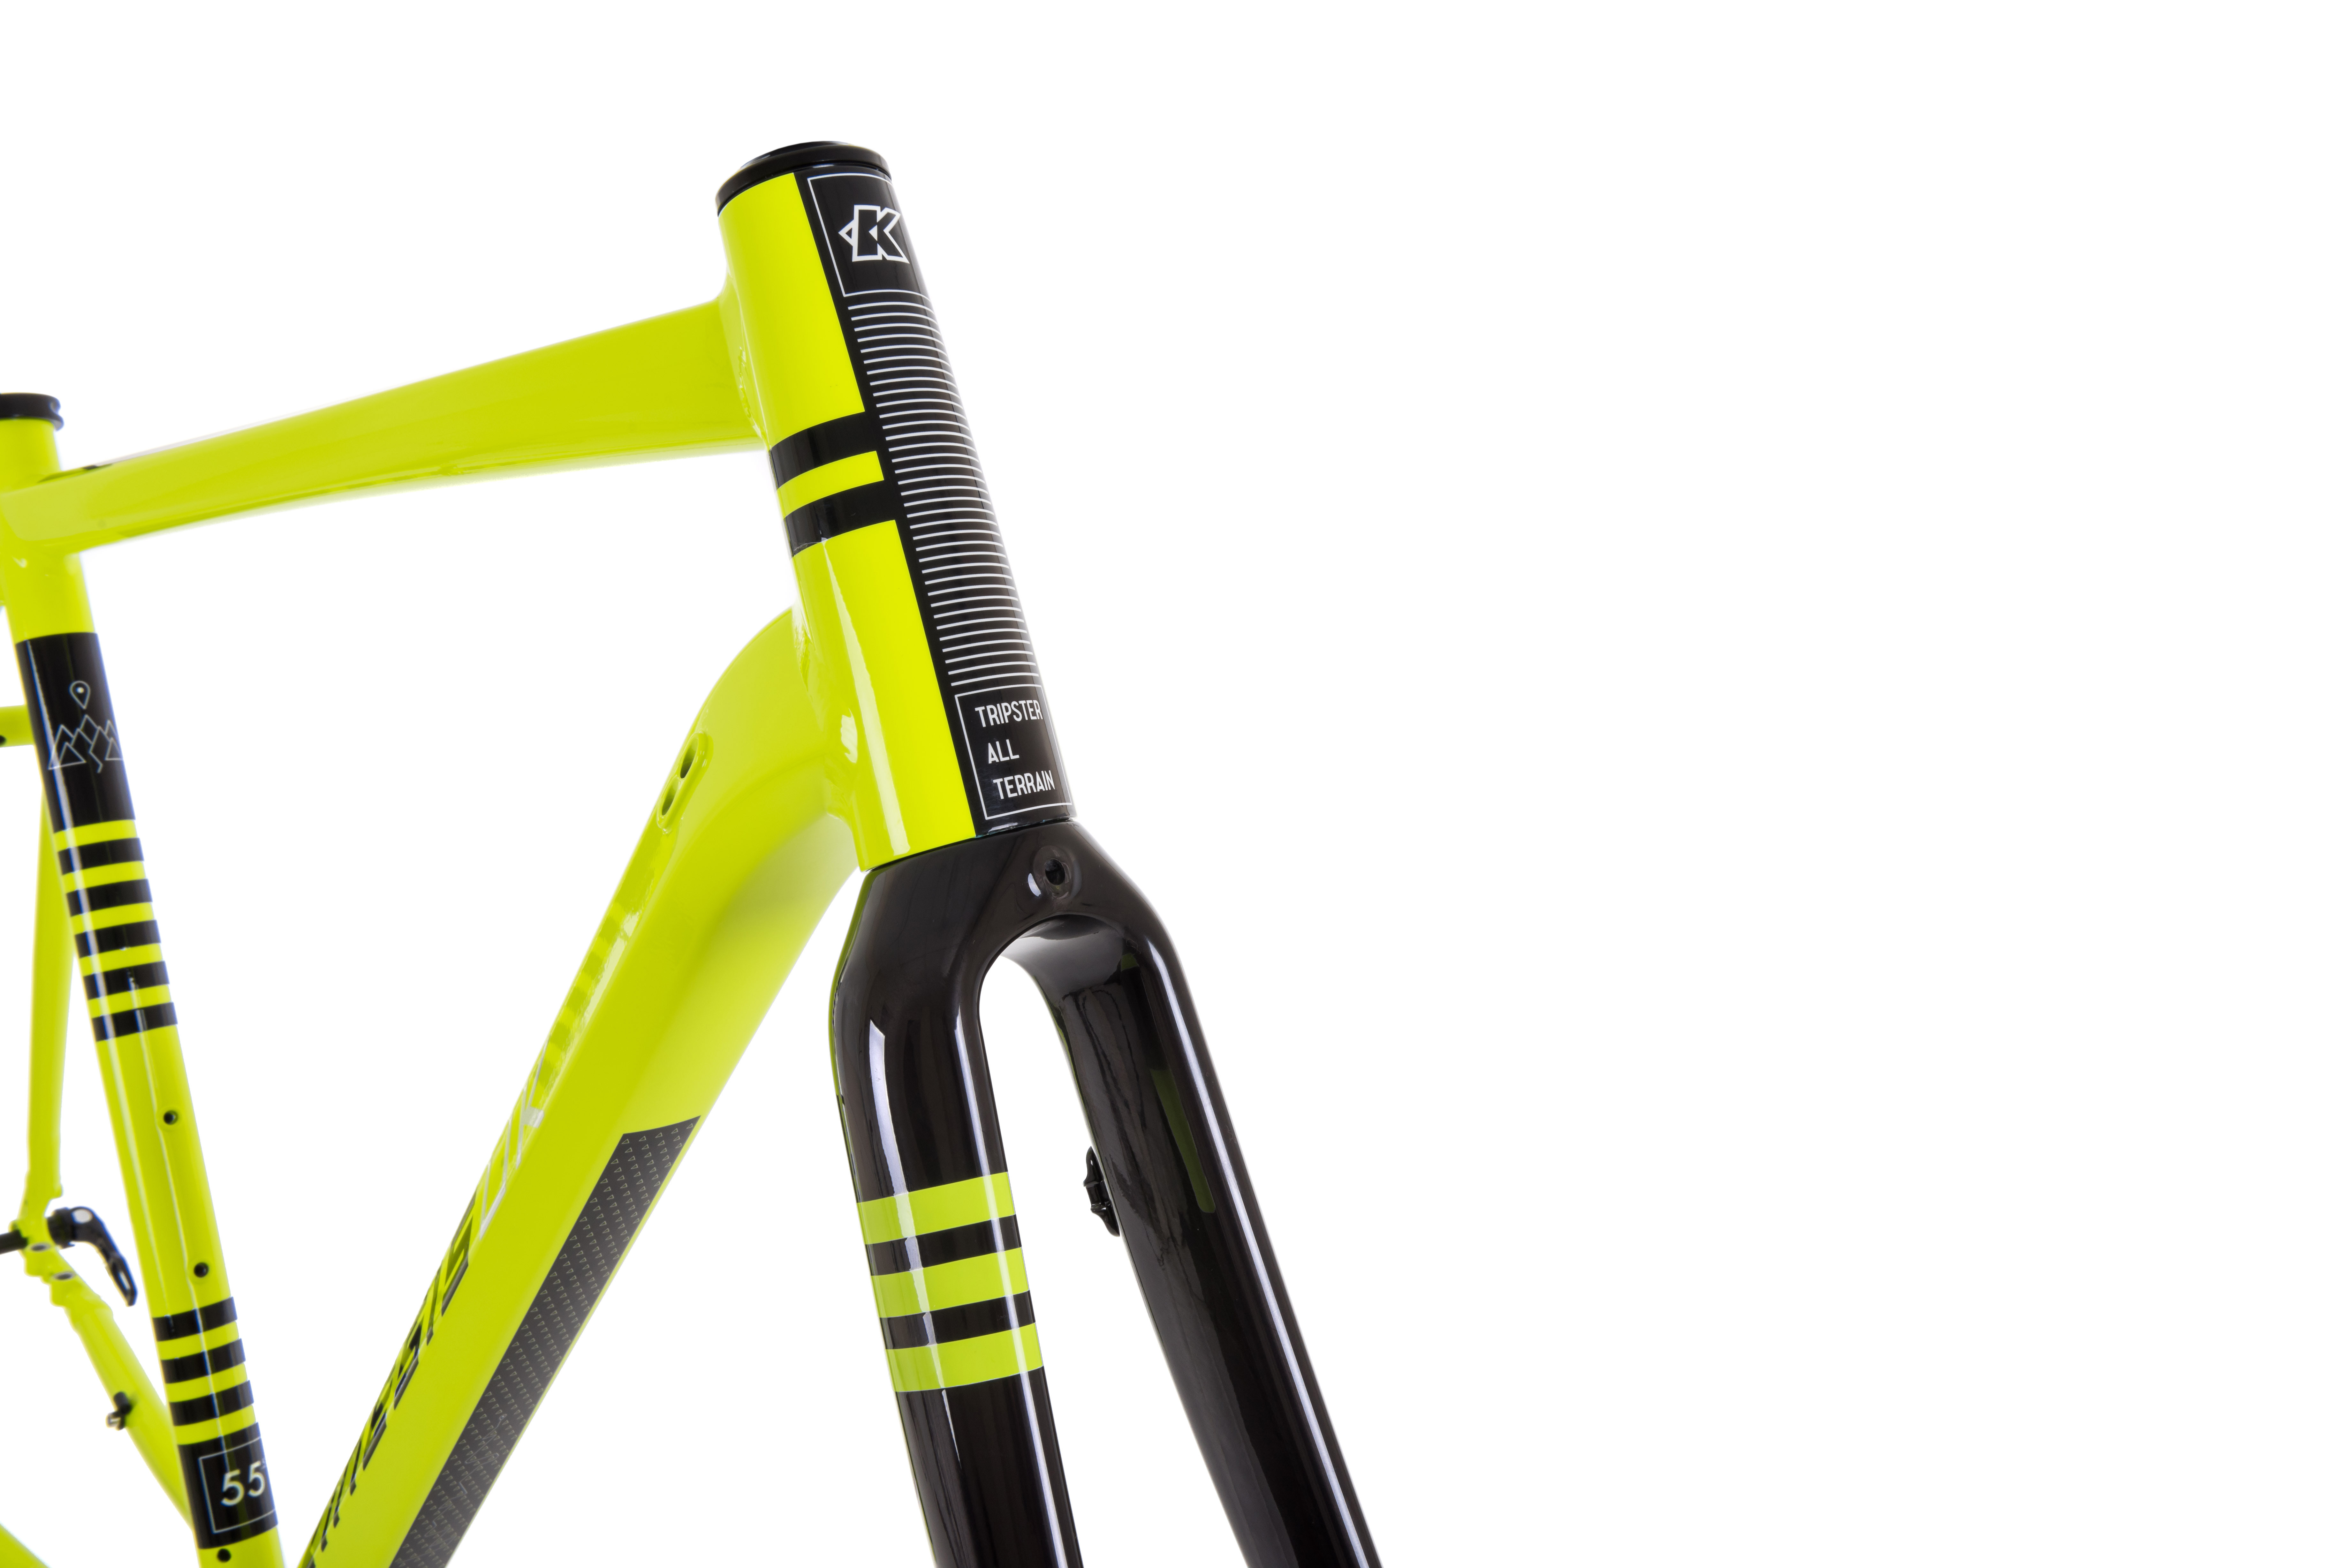 kinesis-tripster-at-yellow-head-tube